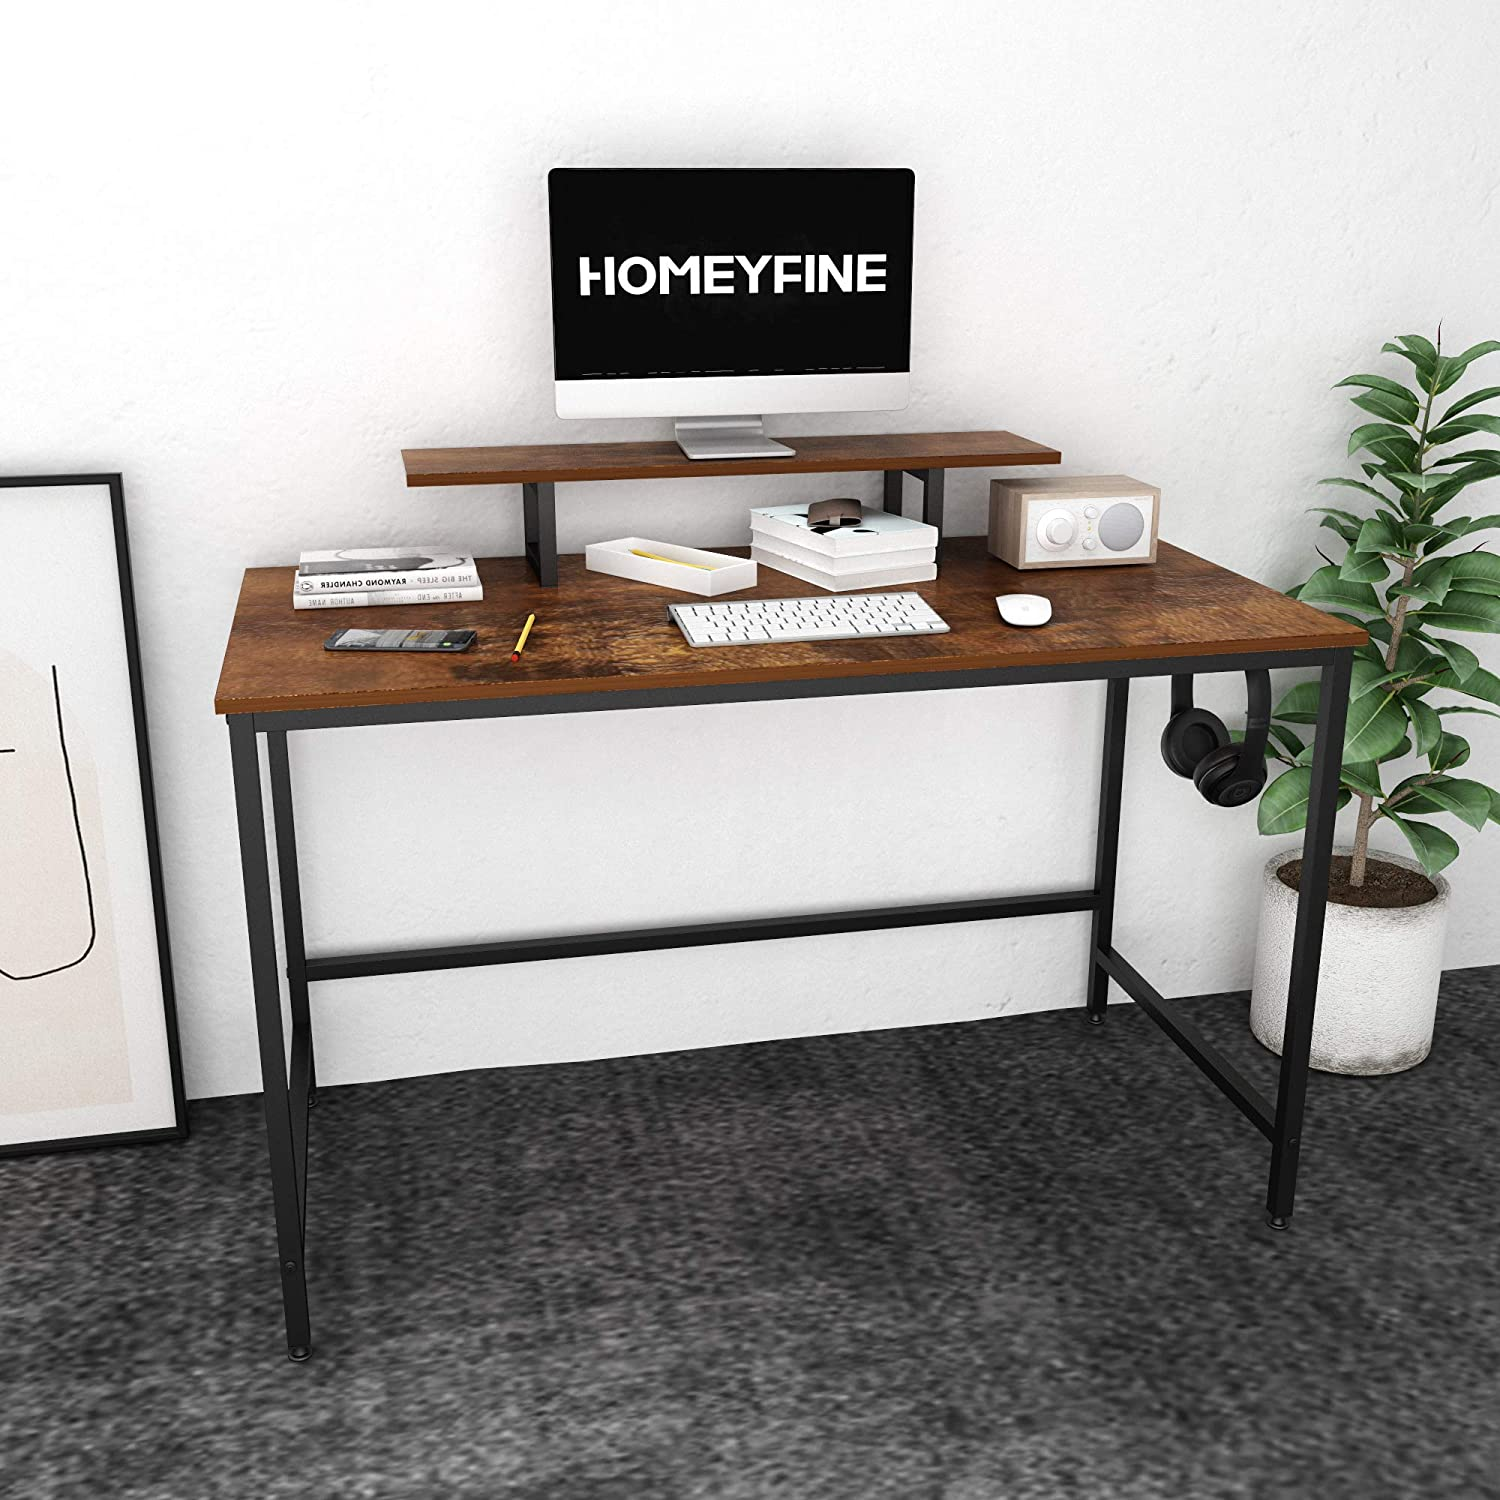 Amazon.com: HOMEYFINE Computer Desk,Laptop Table with Storage for